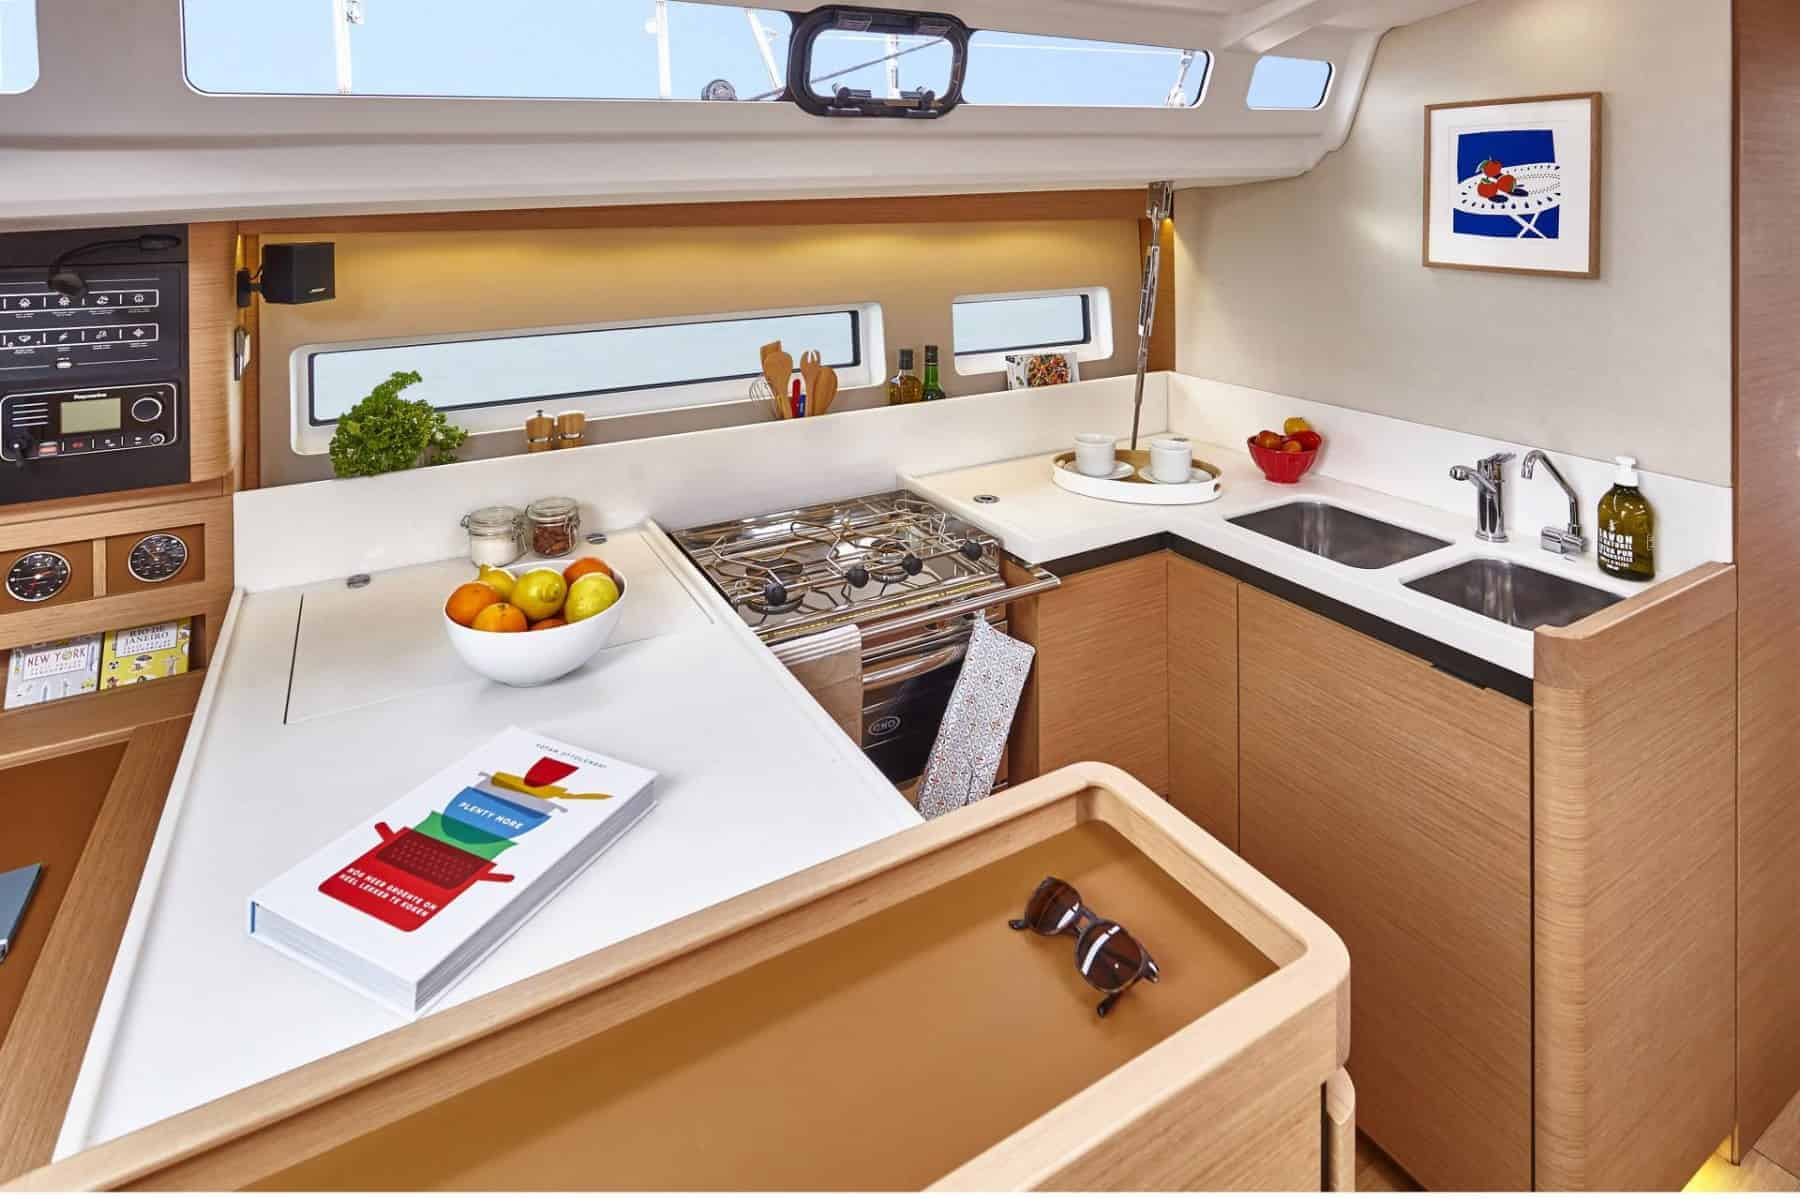 Galley of the Jeanneau Sun Odyssey 440 with a cookbook and bowl of fruit on the countertop